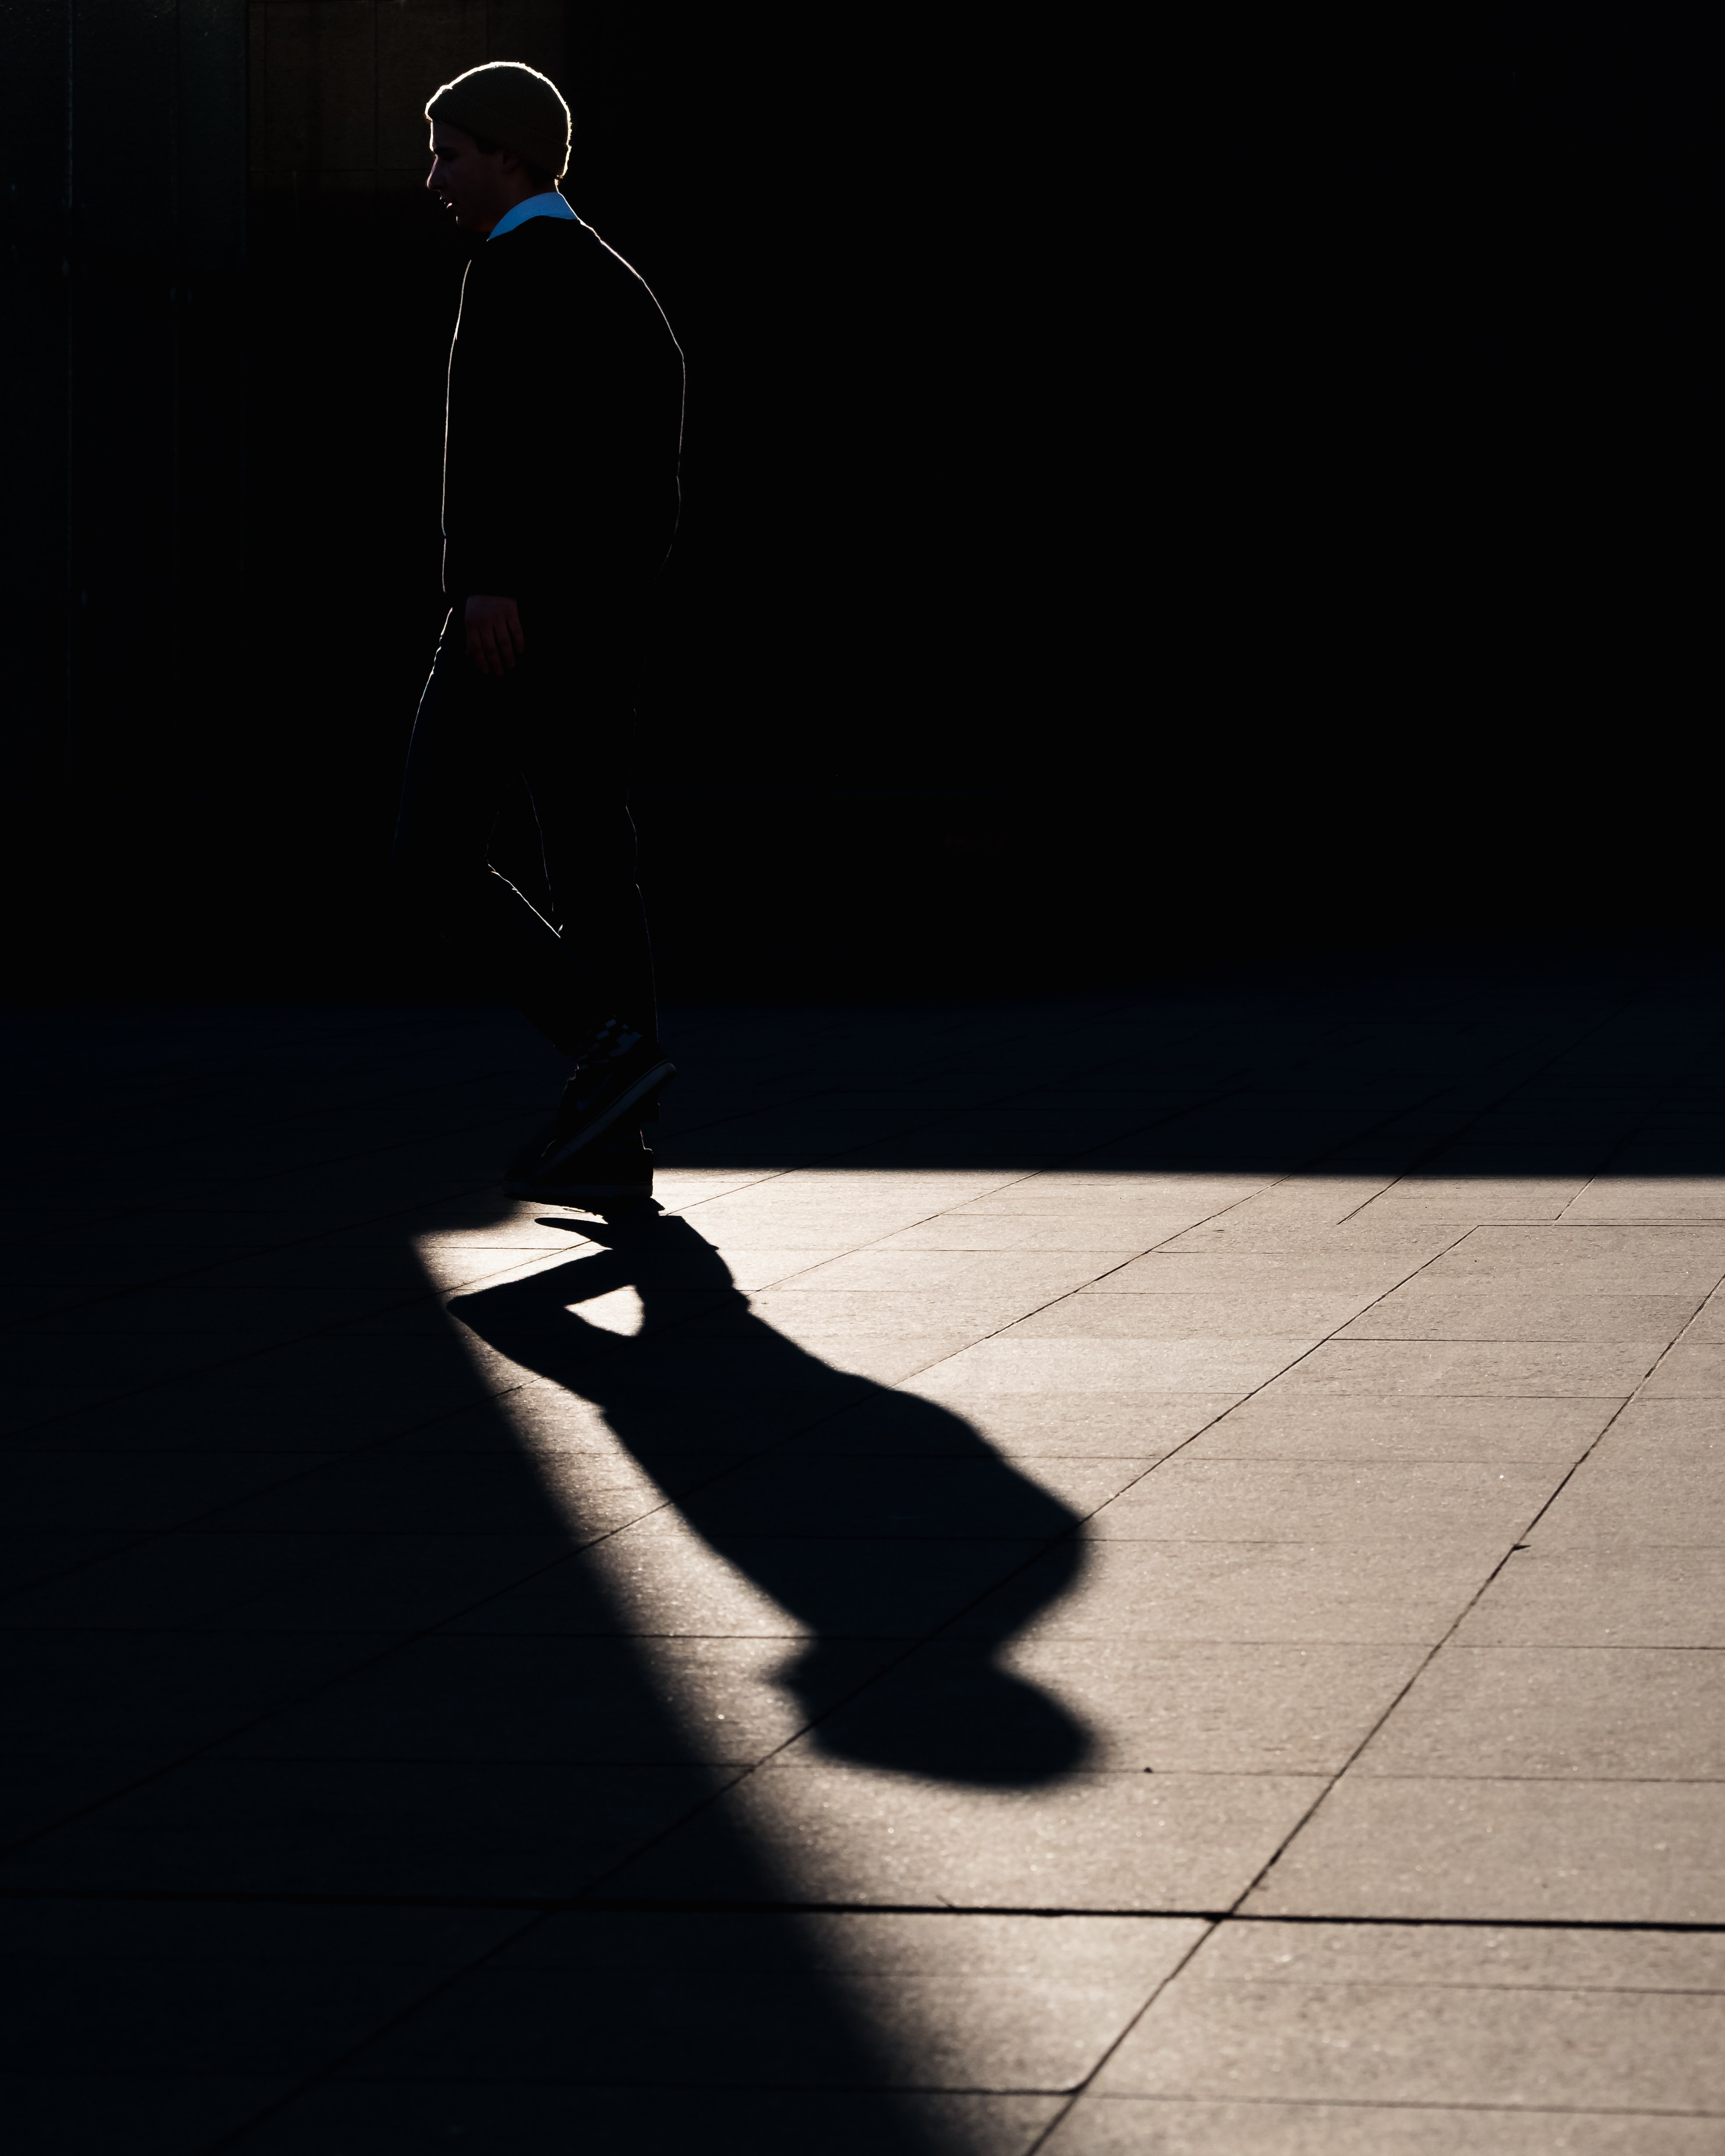 silhouette of man walking on pavement